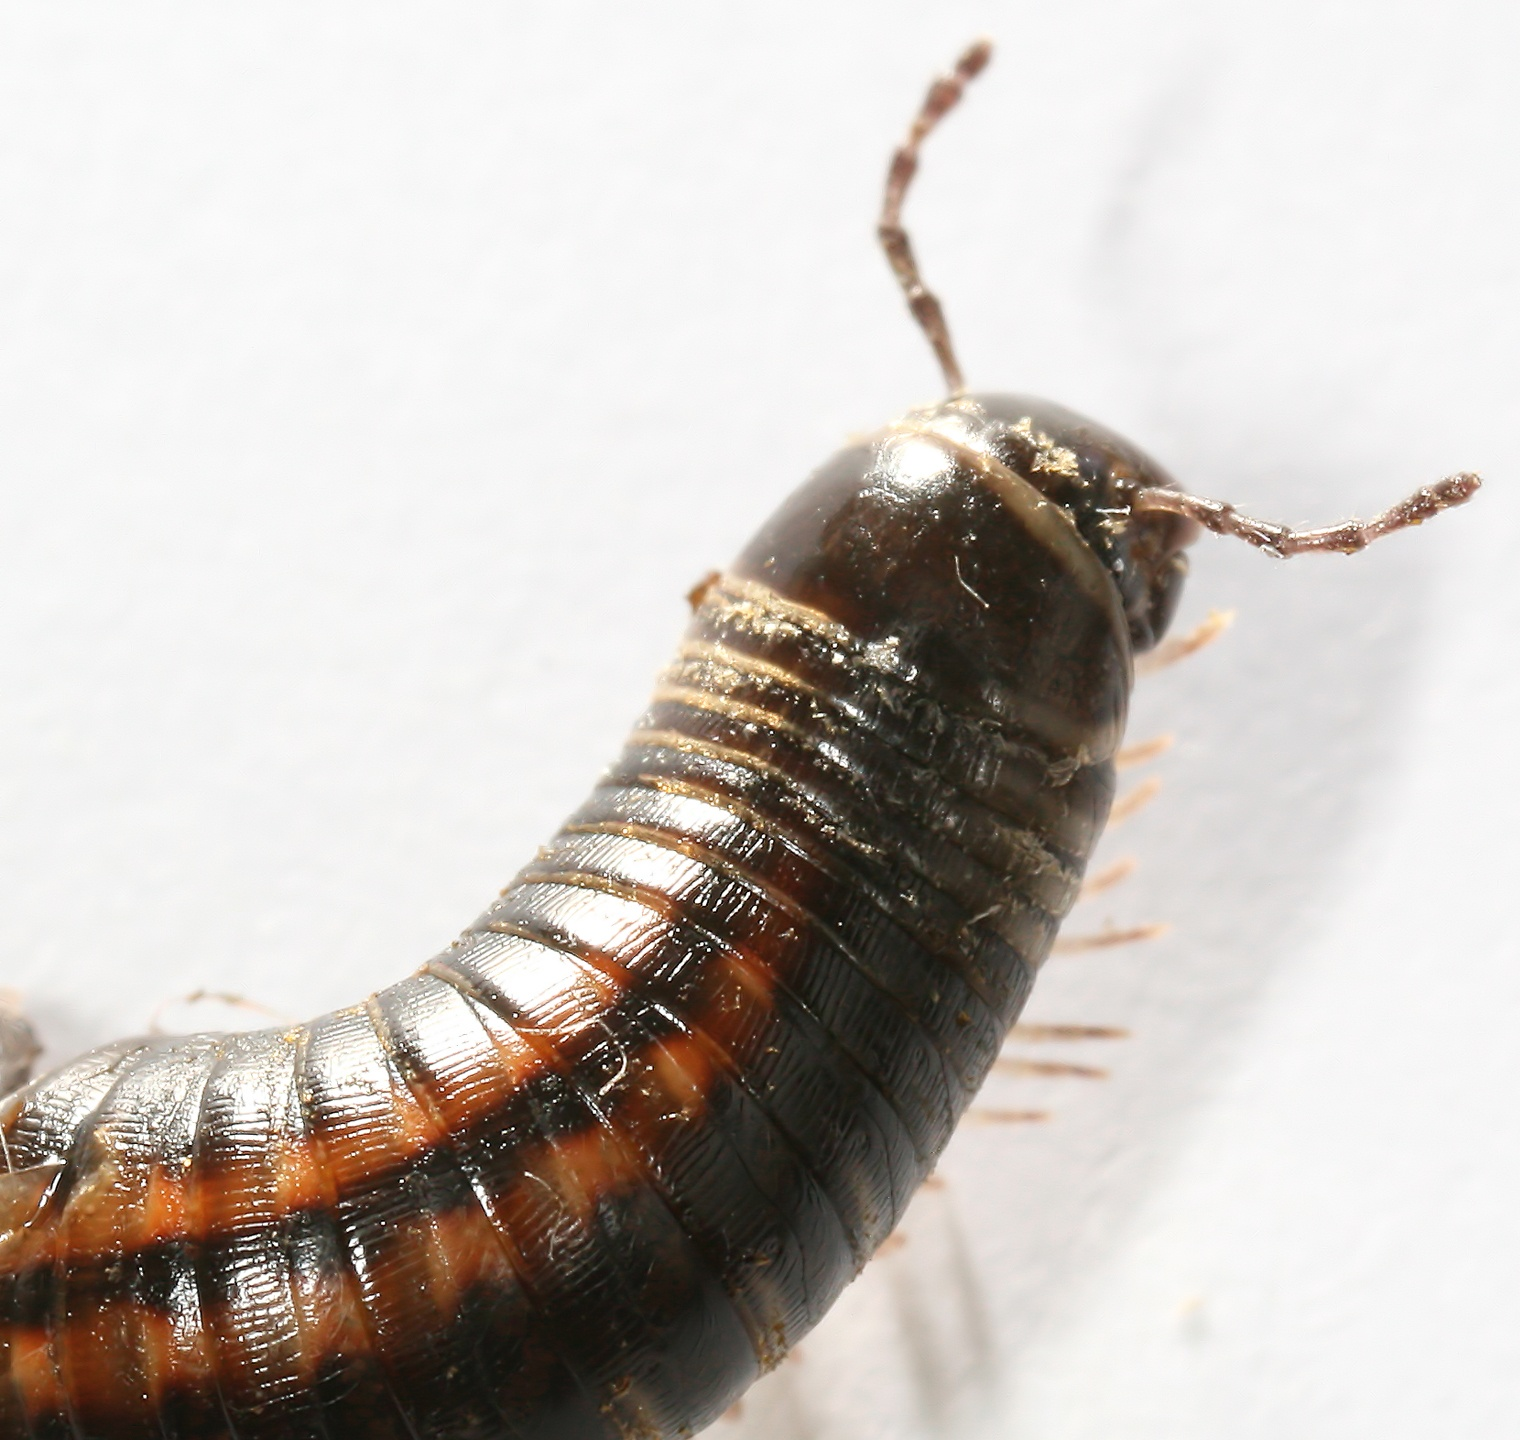 Description Myriapoda Millipede Tausendfuesser2.jpg